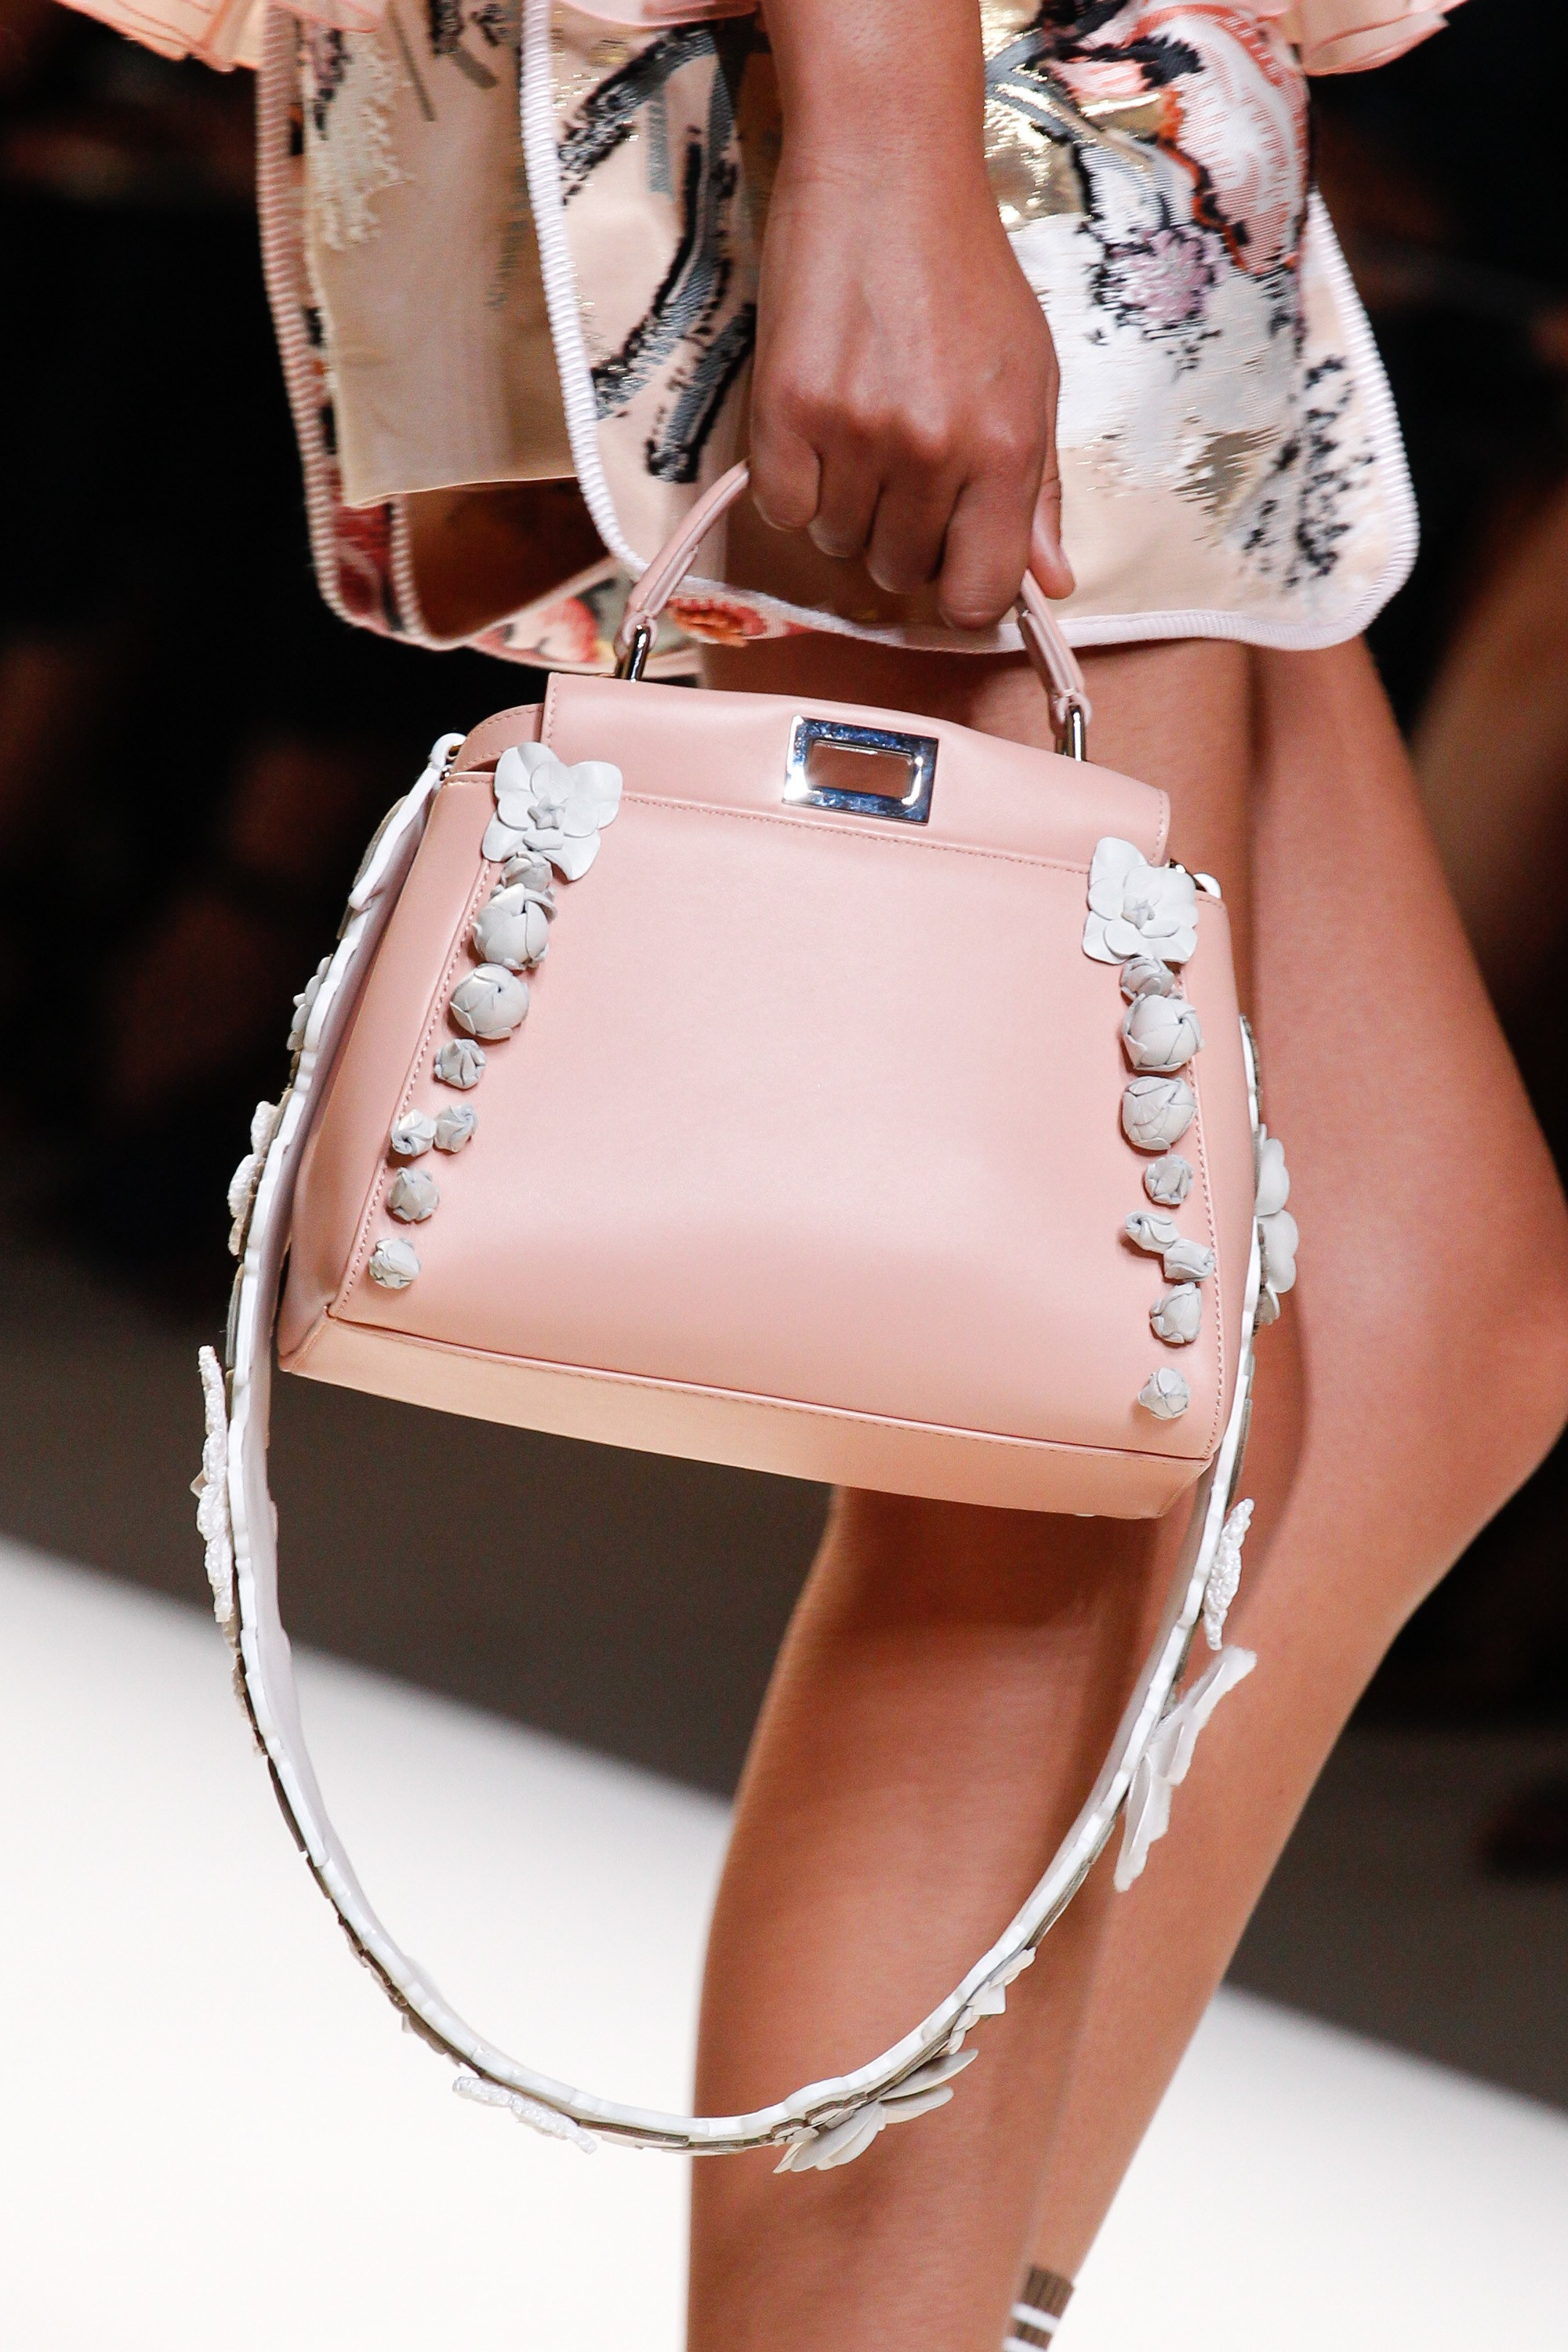 Fendi spring summer 2015 runway bag collection spotted fashion - Fendi Pink Mini Peekaboo Bag Spring 2017